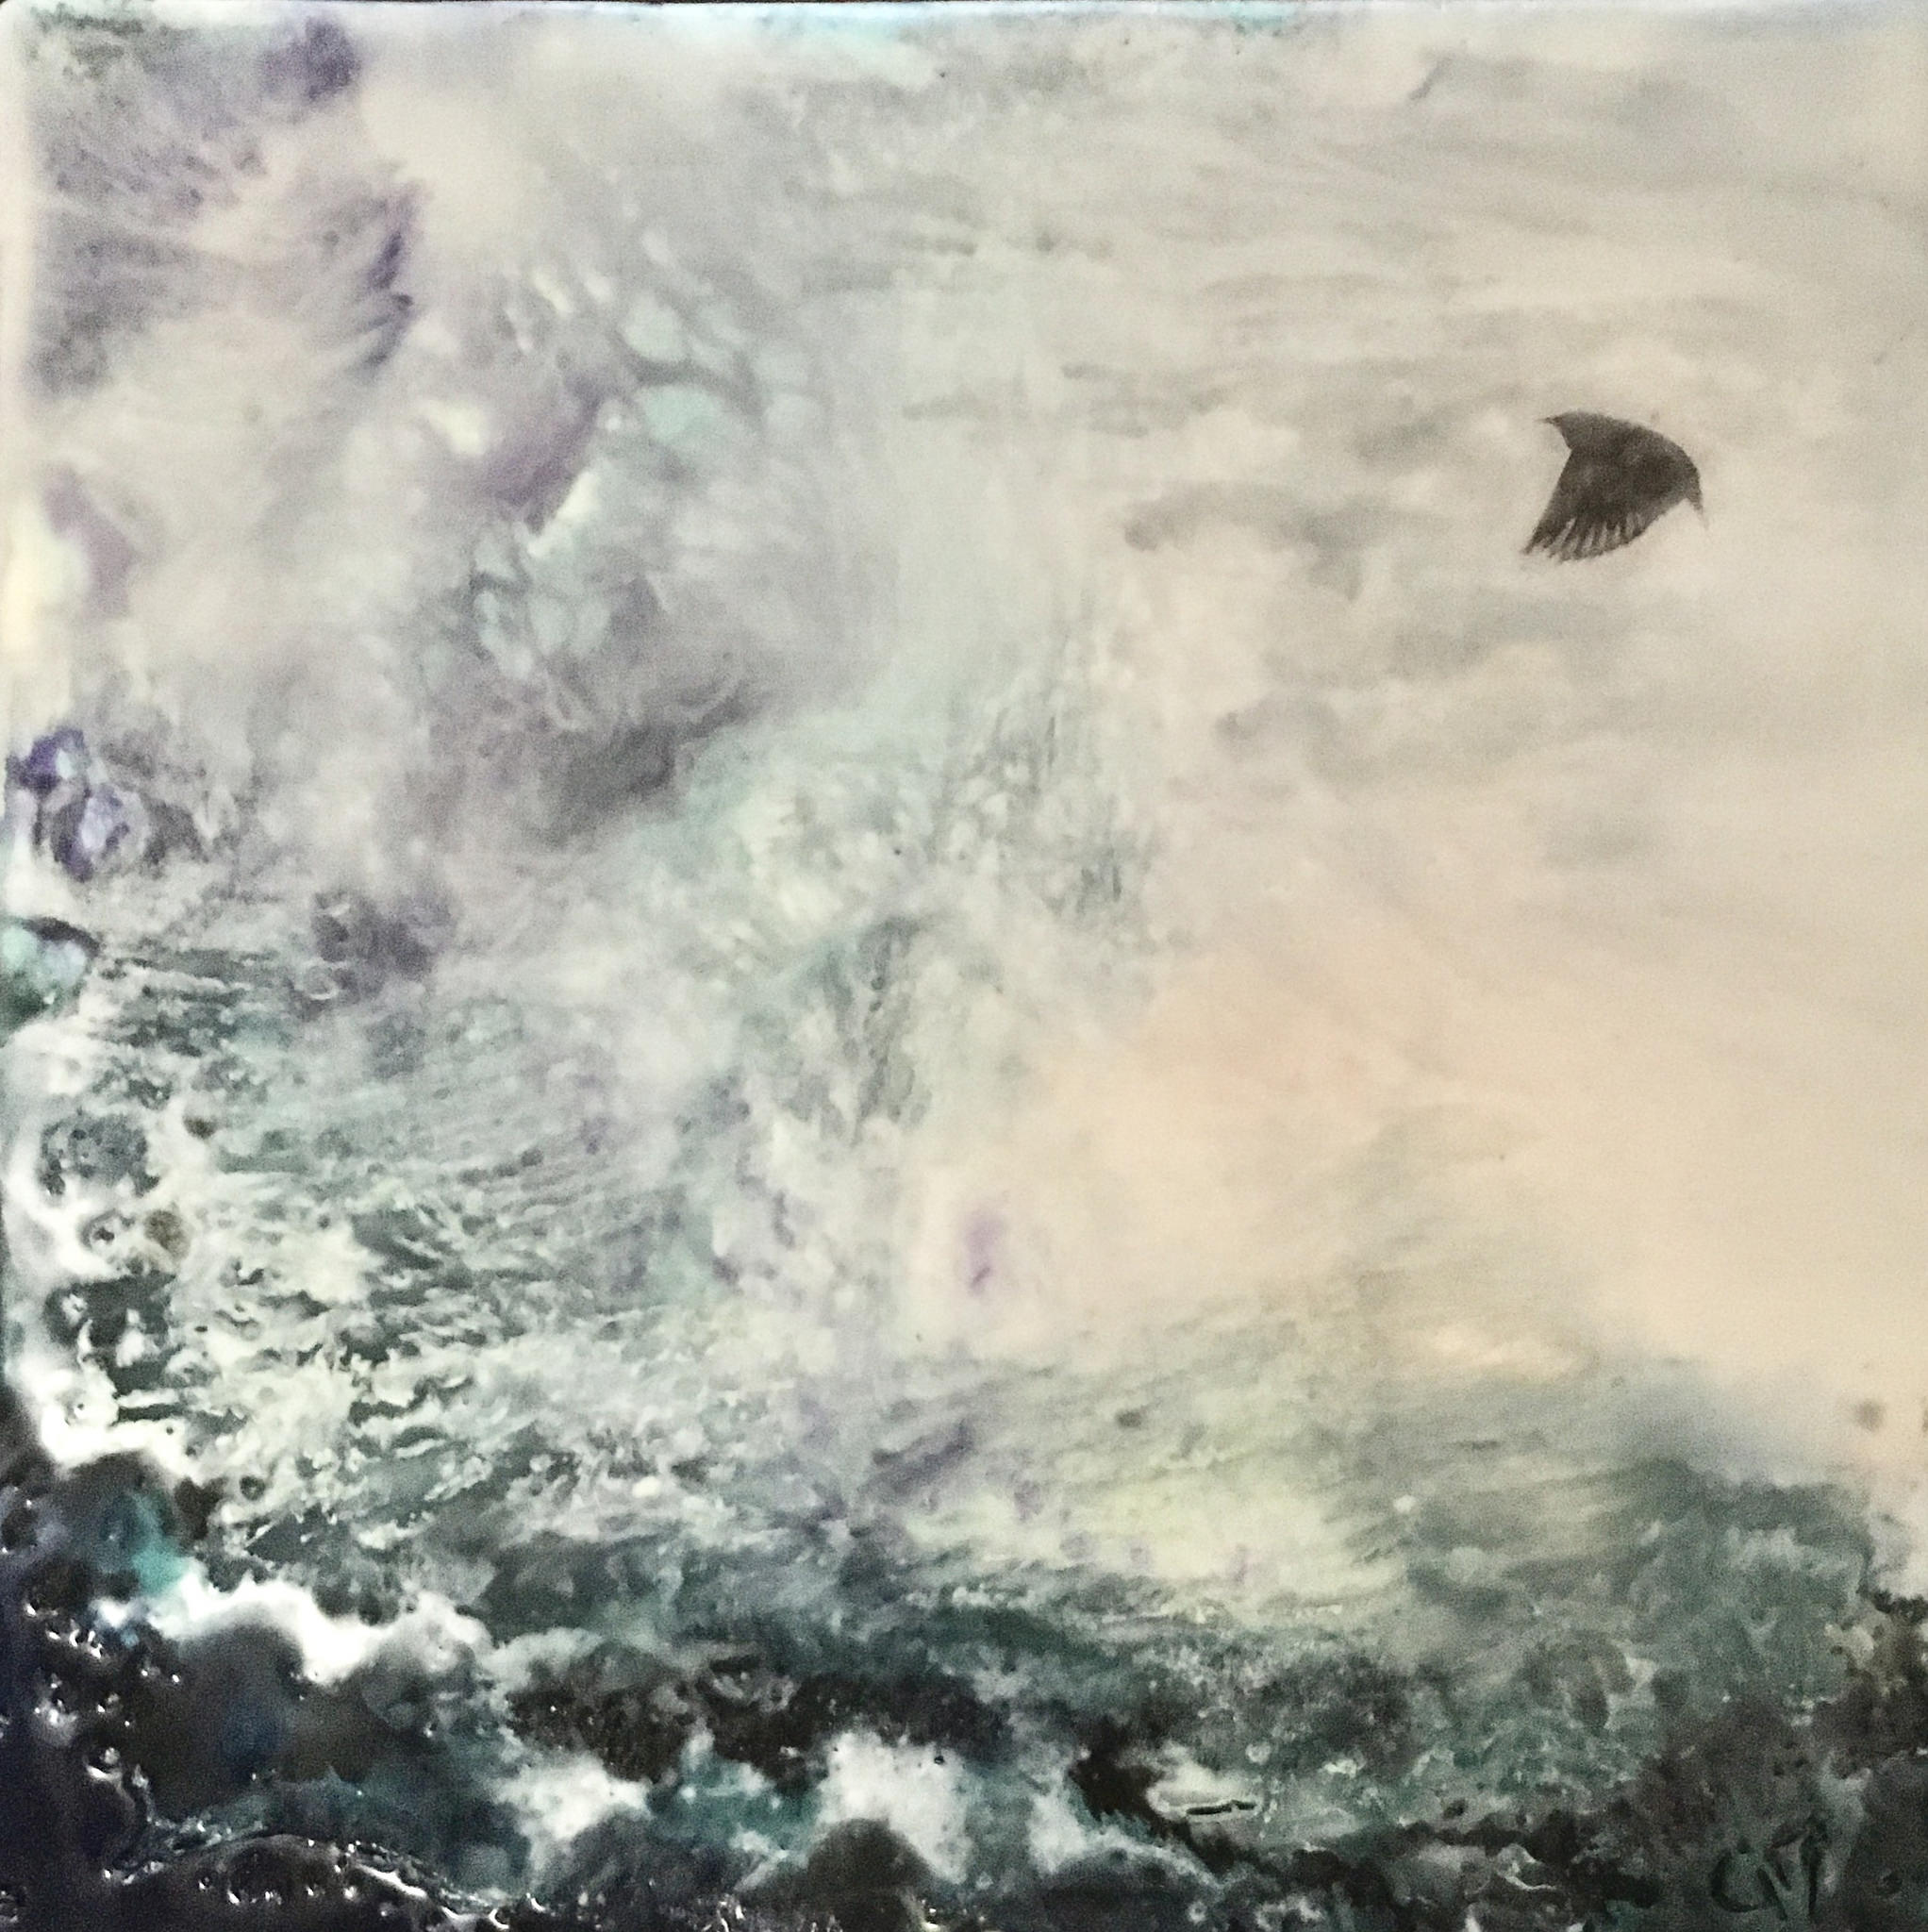 """""""Storm Chaser""""   6x6"""" framed  encaustic mixed media on board  $175 CAD  2017"""